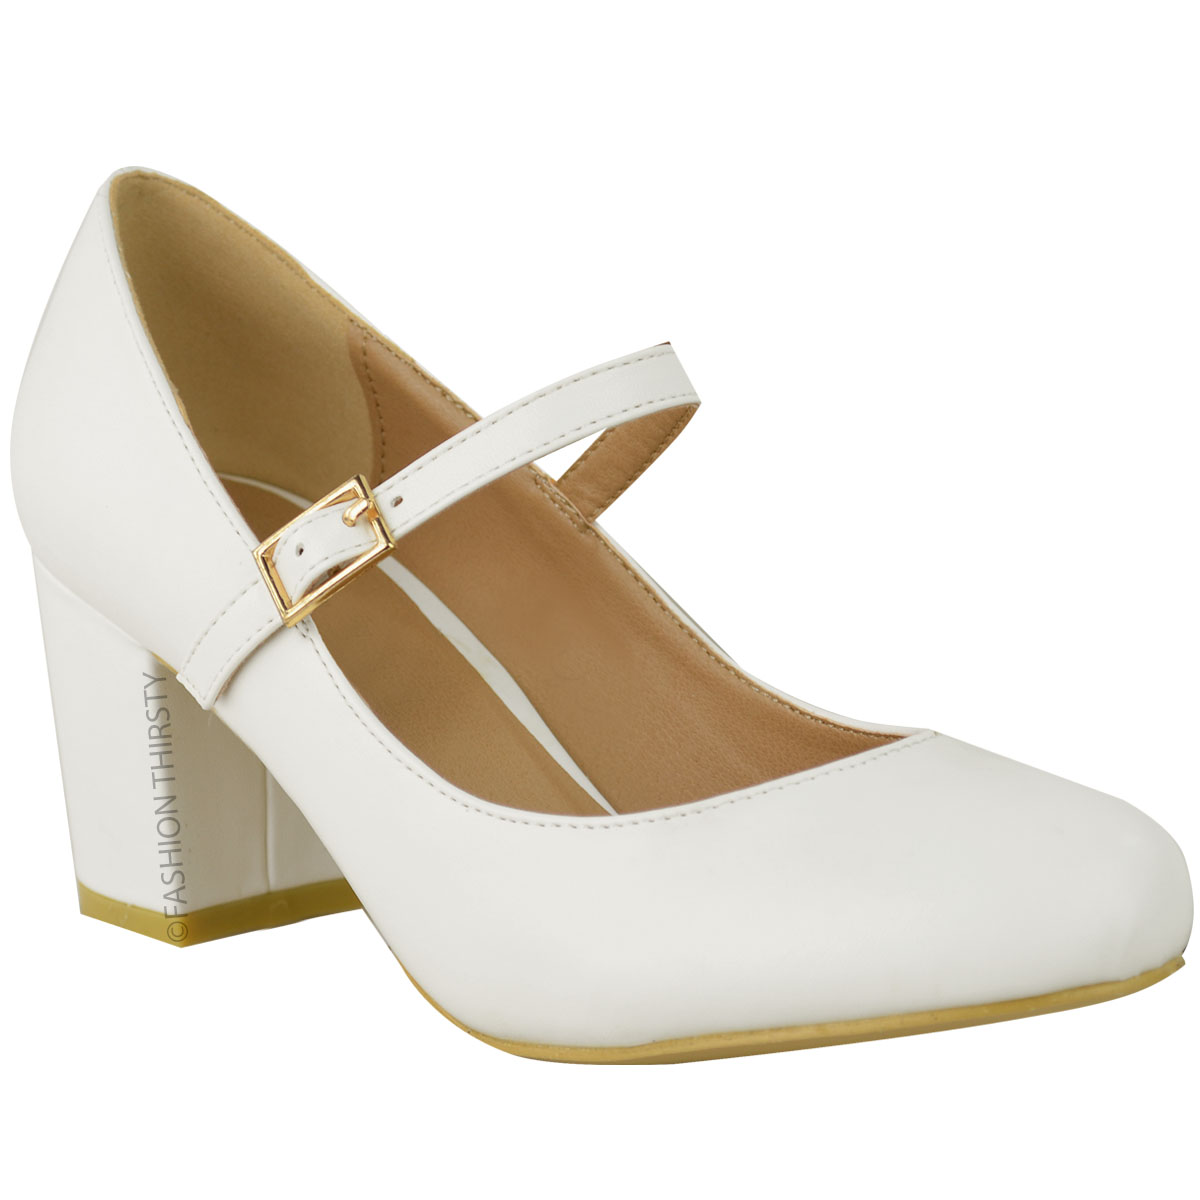 Mid Heel Mary Janes Shoes In White